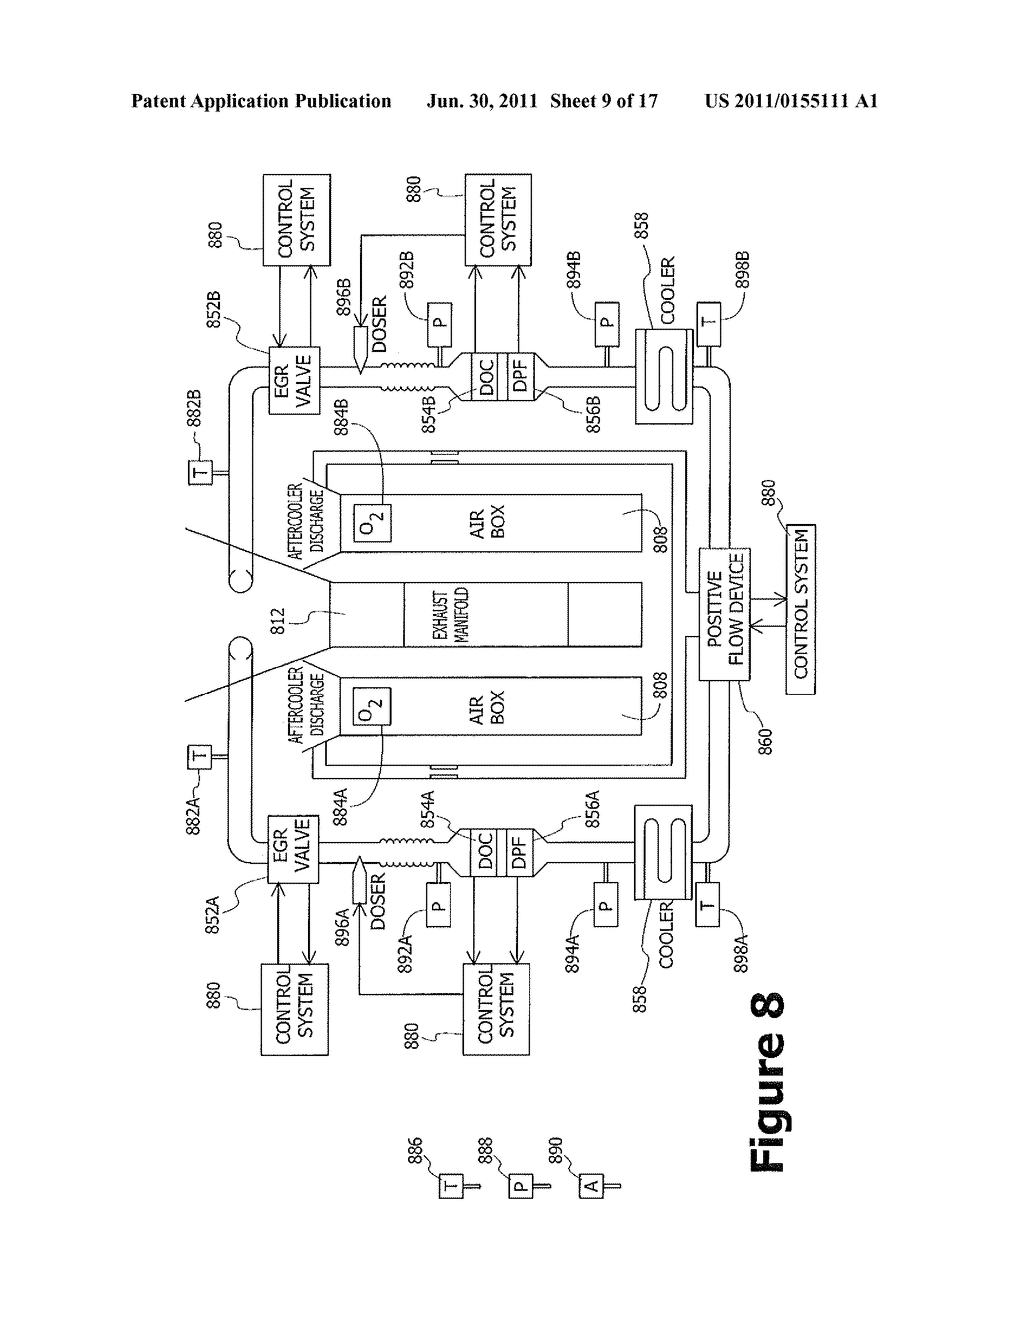 hight resolution of exhaust gas recirculation system for a locomotive two stroke uniflow scavenged diesel engine diagram schematic and image 10